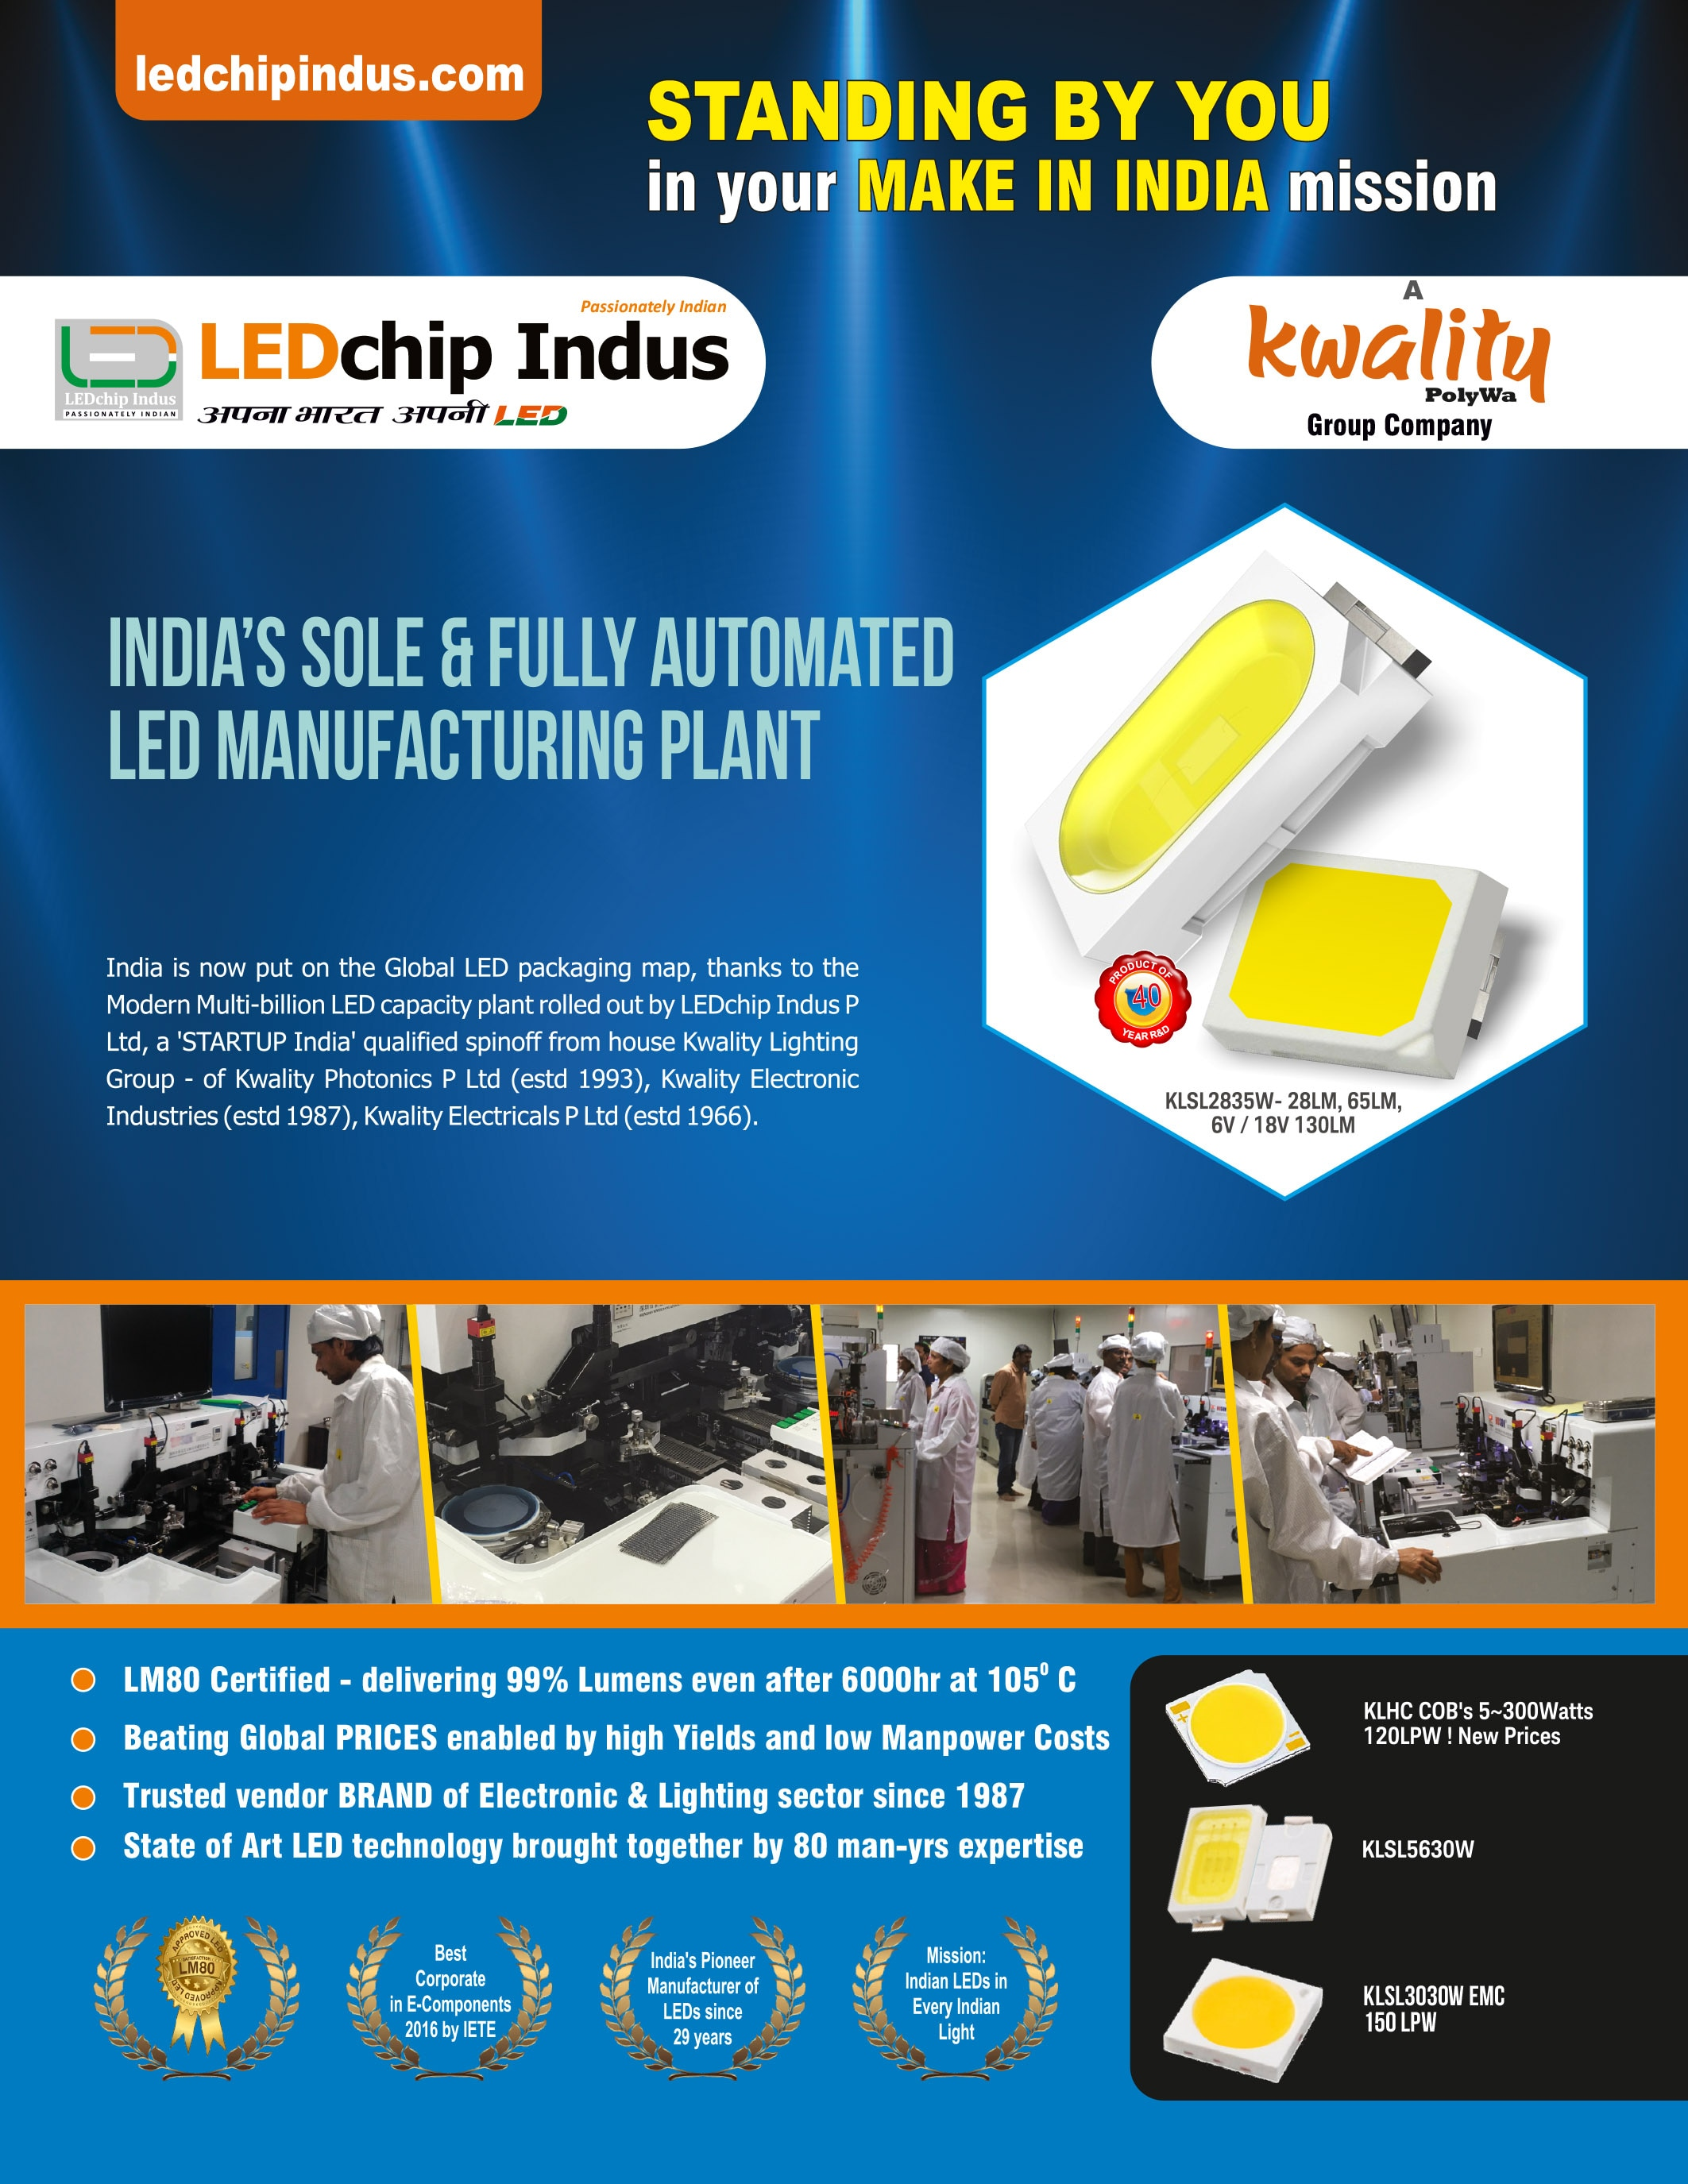 LEDchip Indus P Ltd is Manufacturer of High-Reliability SMD LEDs - We've setup India's first billion LEDs packaging plant & expanding it - using Hi speed, fully automatic LEDs process under Class10K Dust-free AC environment, for Lighting industry. The SMD LEDs in focus are 2835, 3030, 5730 etc in 0.2W ( for Tubelights), 0.5W (for bulbs, Downlights, Panels, Troffers), 1.0W ( for Street lights, Flood lights), COB LEDs ( for Flood Lights, Baylights).